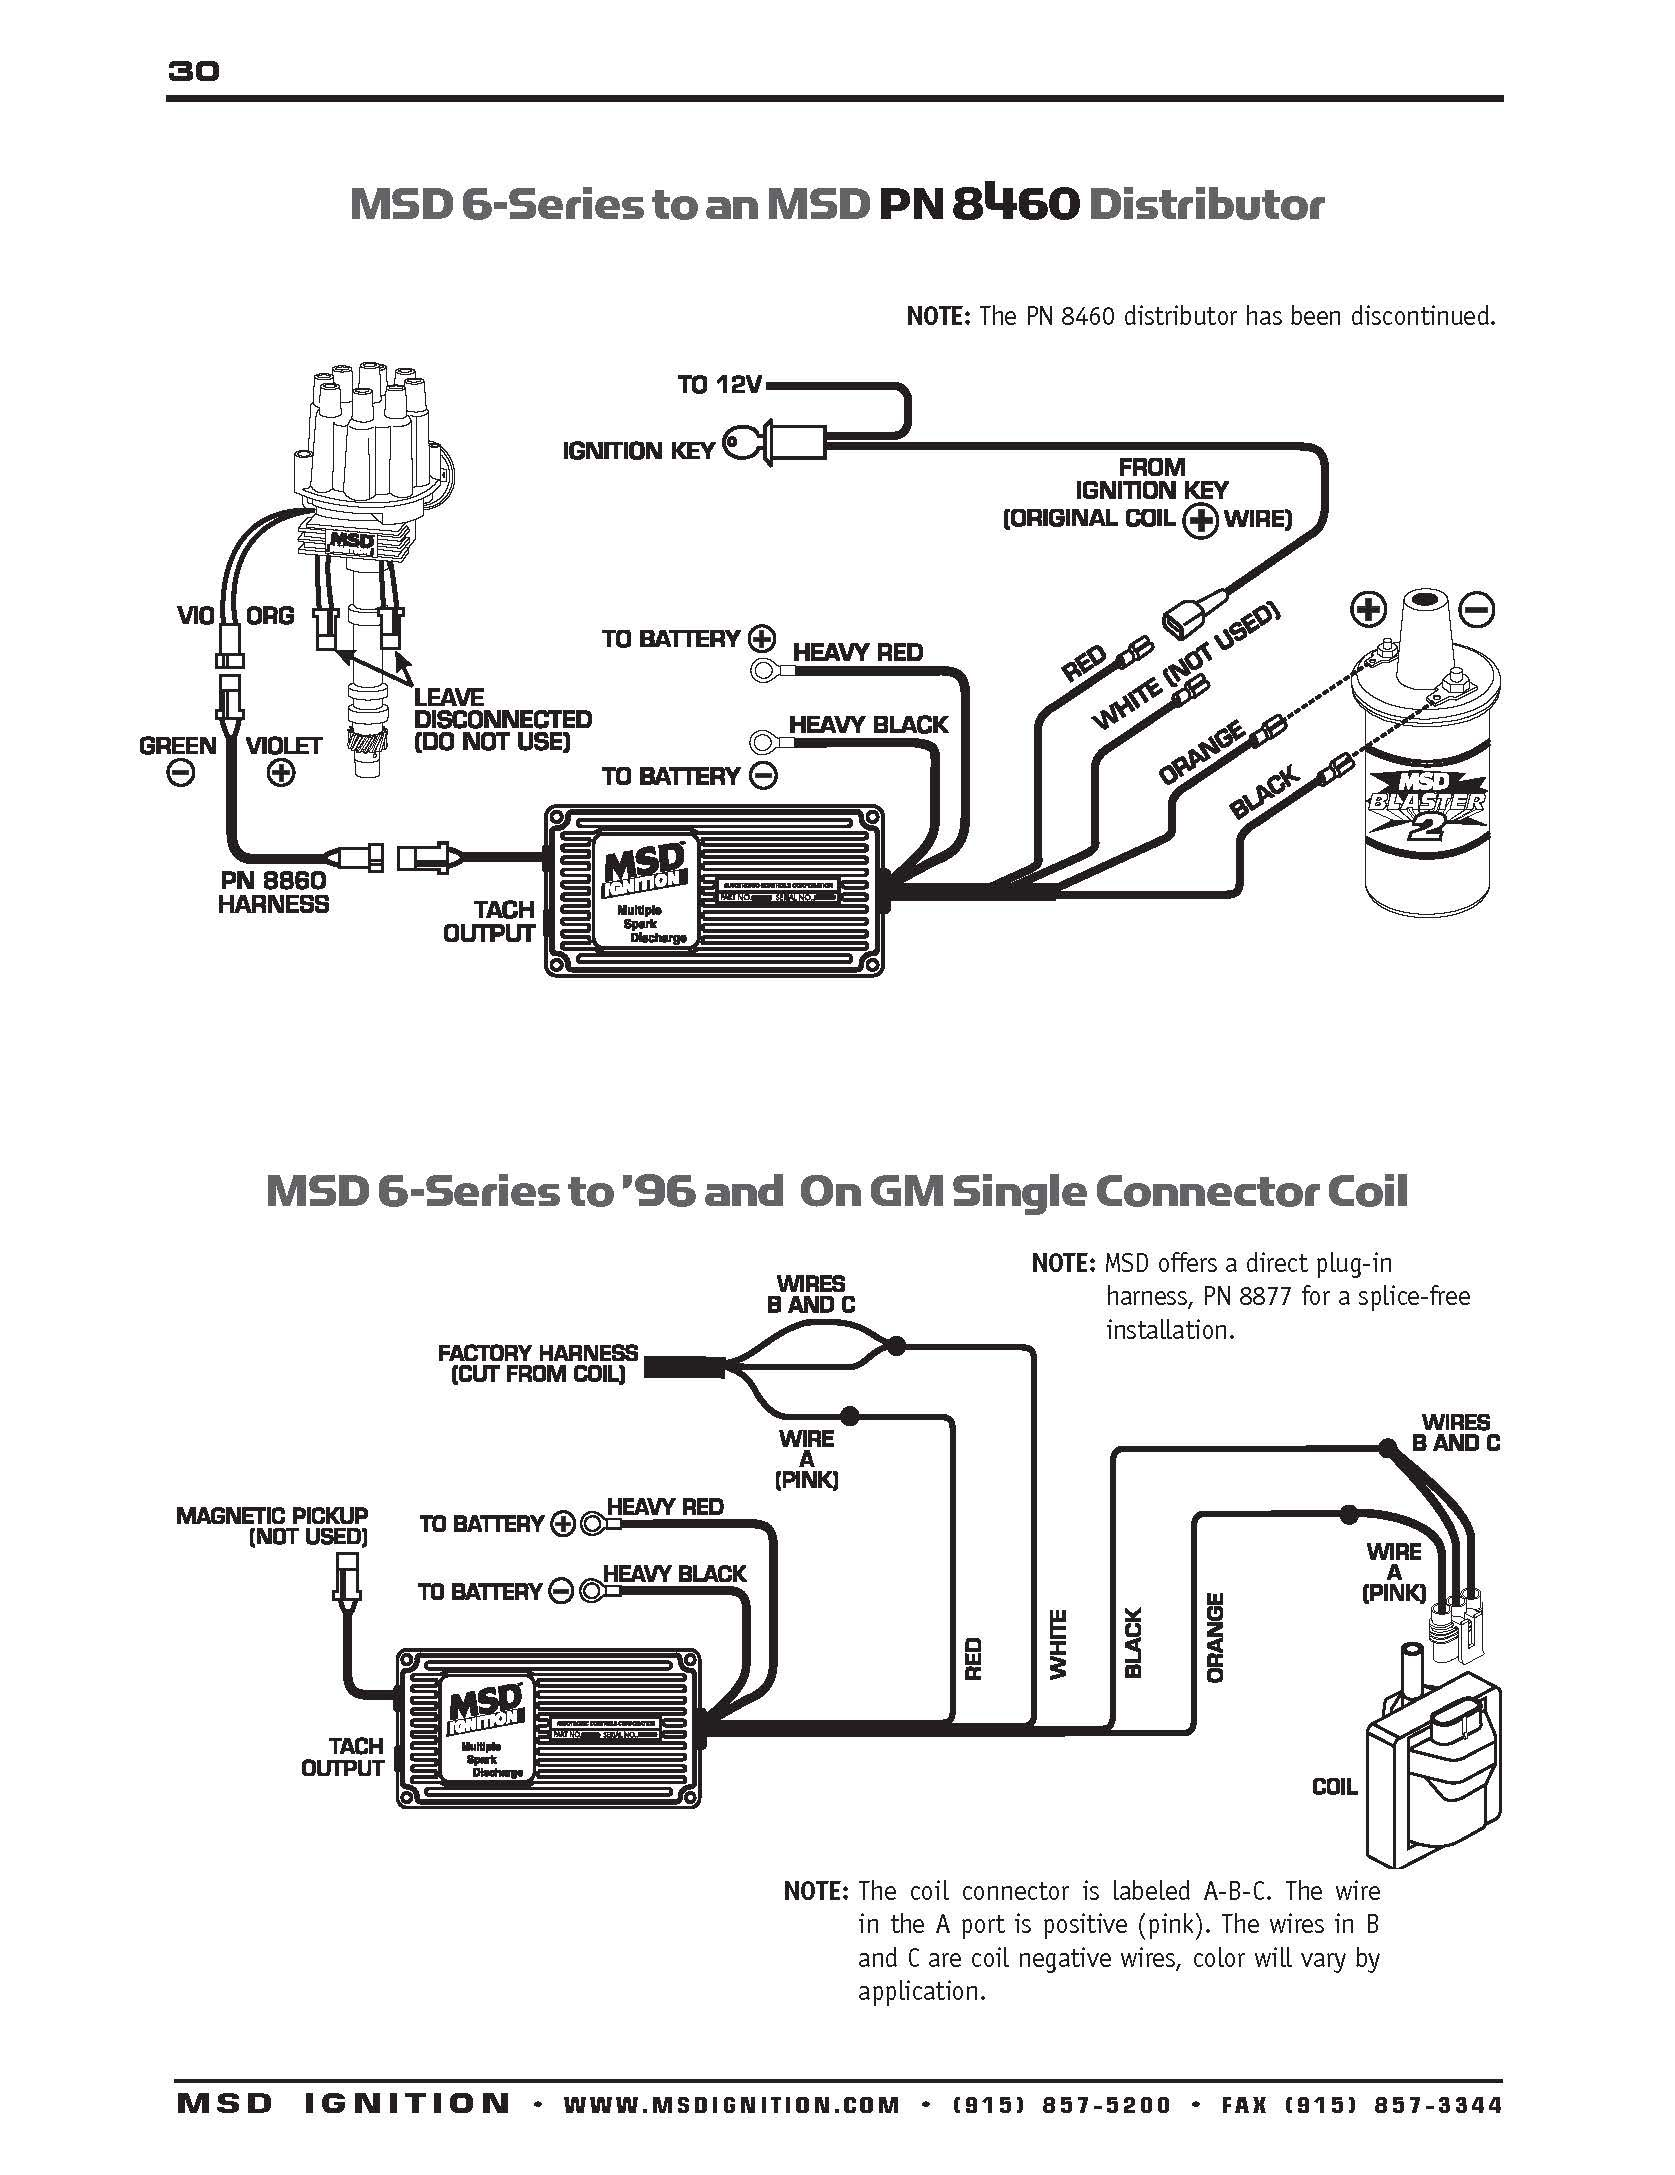 boost msd digital 6al wiring diagram msd 5200 ignition wiring diagram e1 wiring diagram  msd 5200 ignition wiring diagram e1